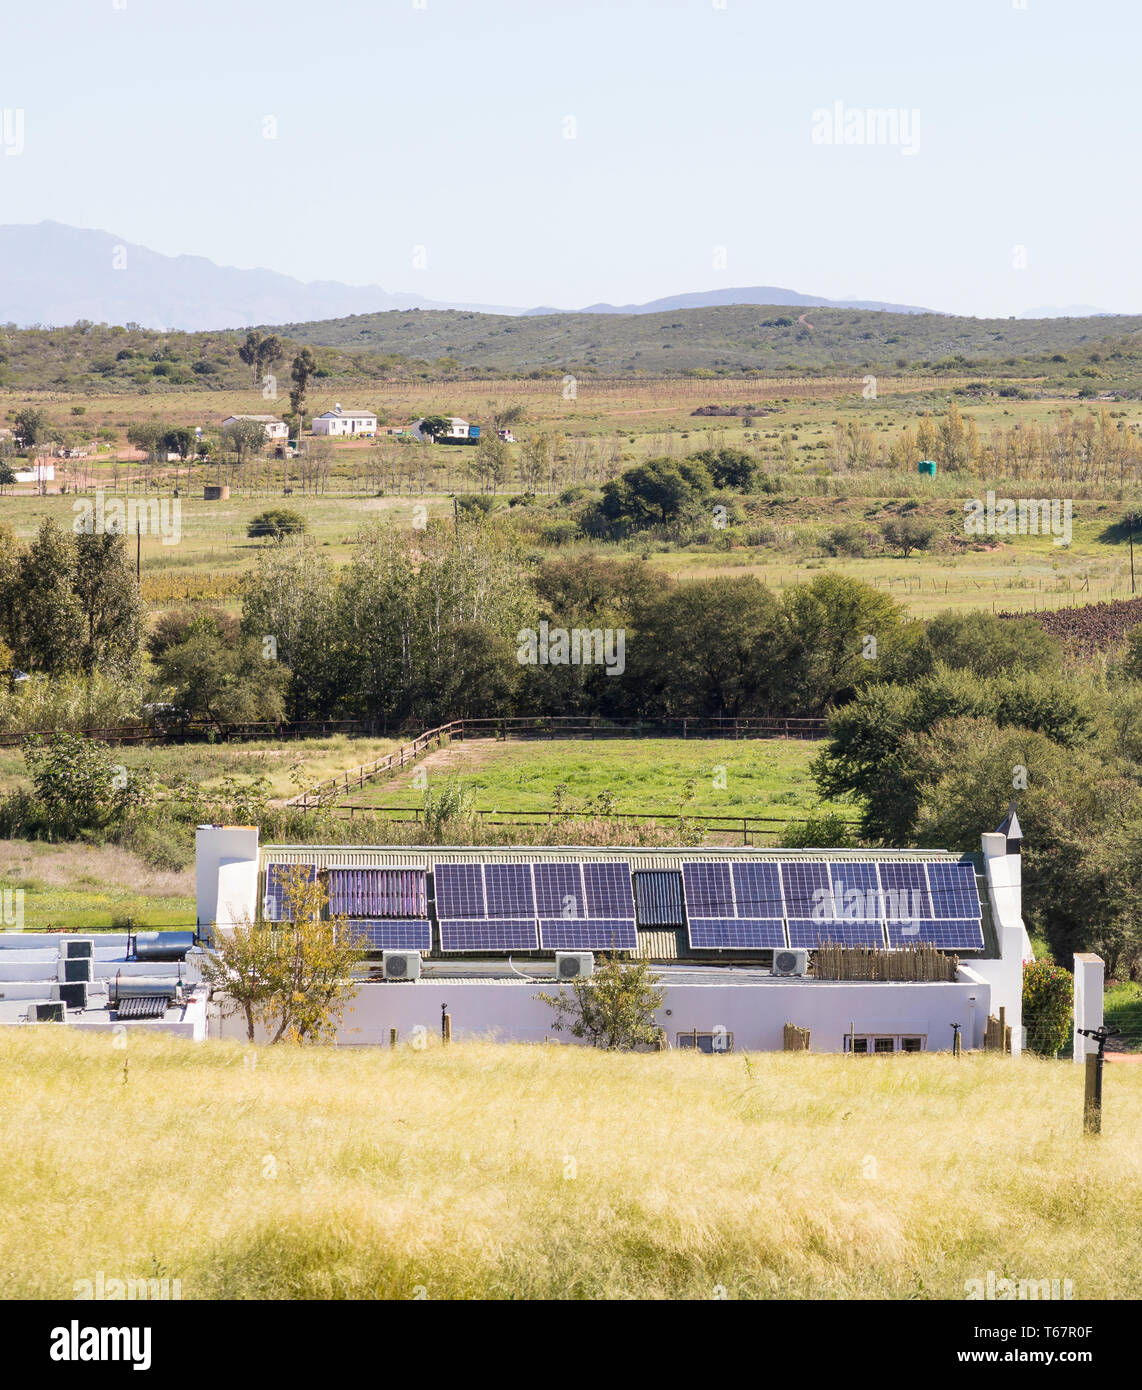 Environmentally friendly farmhouse with solar energy, Western Cape, South Africa, rooftop photovoltaic cells for household power and solar hot water g - Stock Image